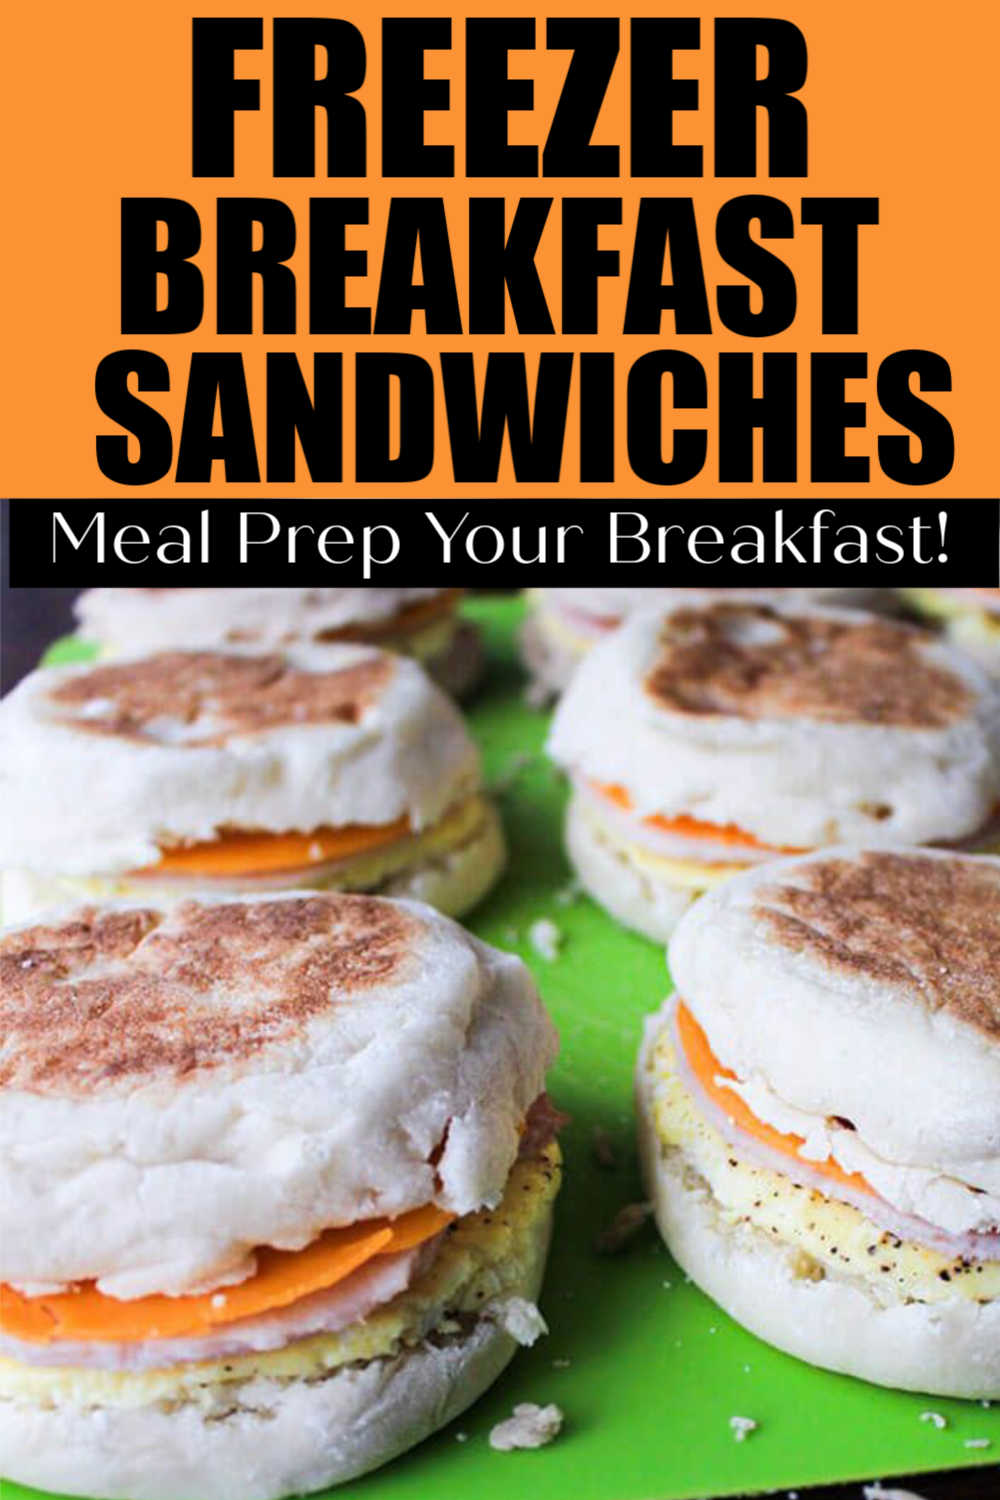 Homemade Freezer Breakfast Sandwiches - Meal Prep For The Week!